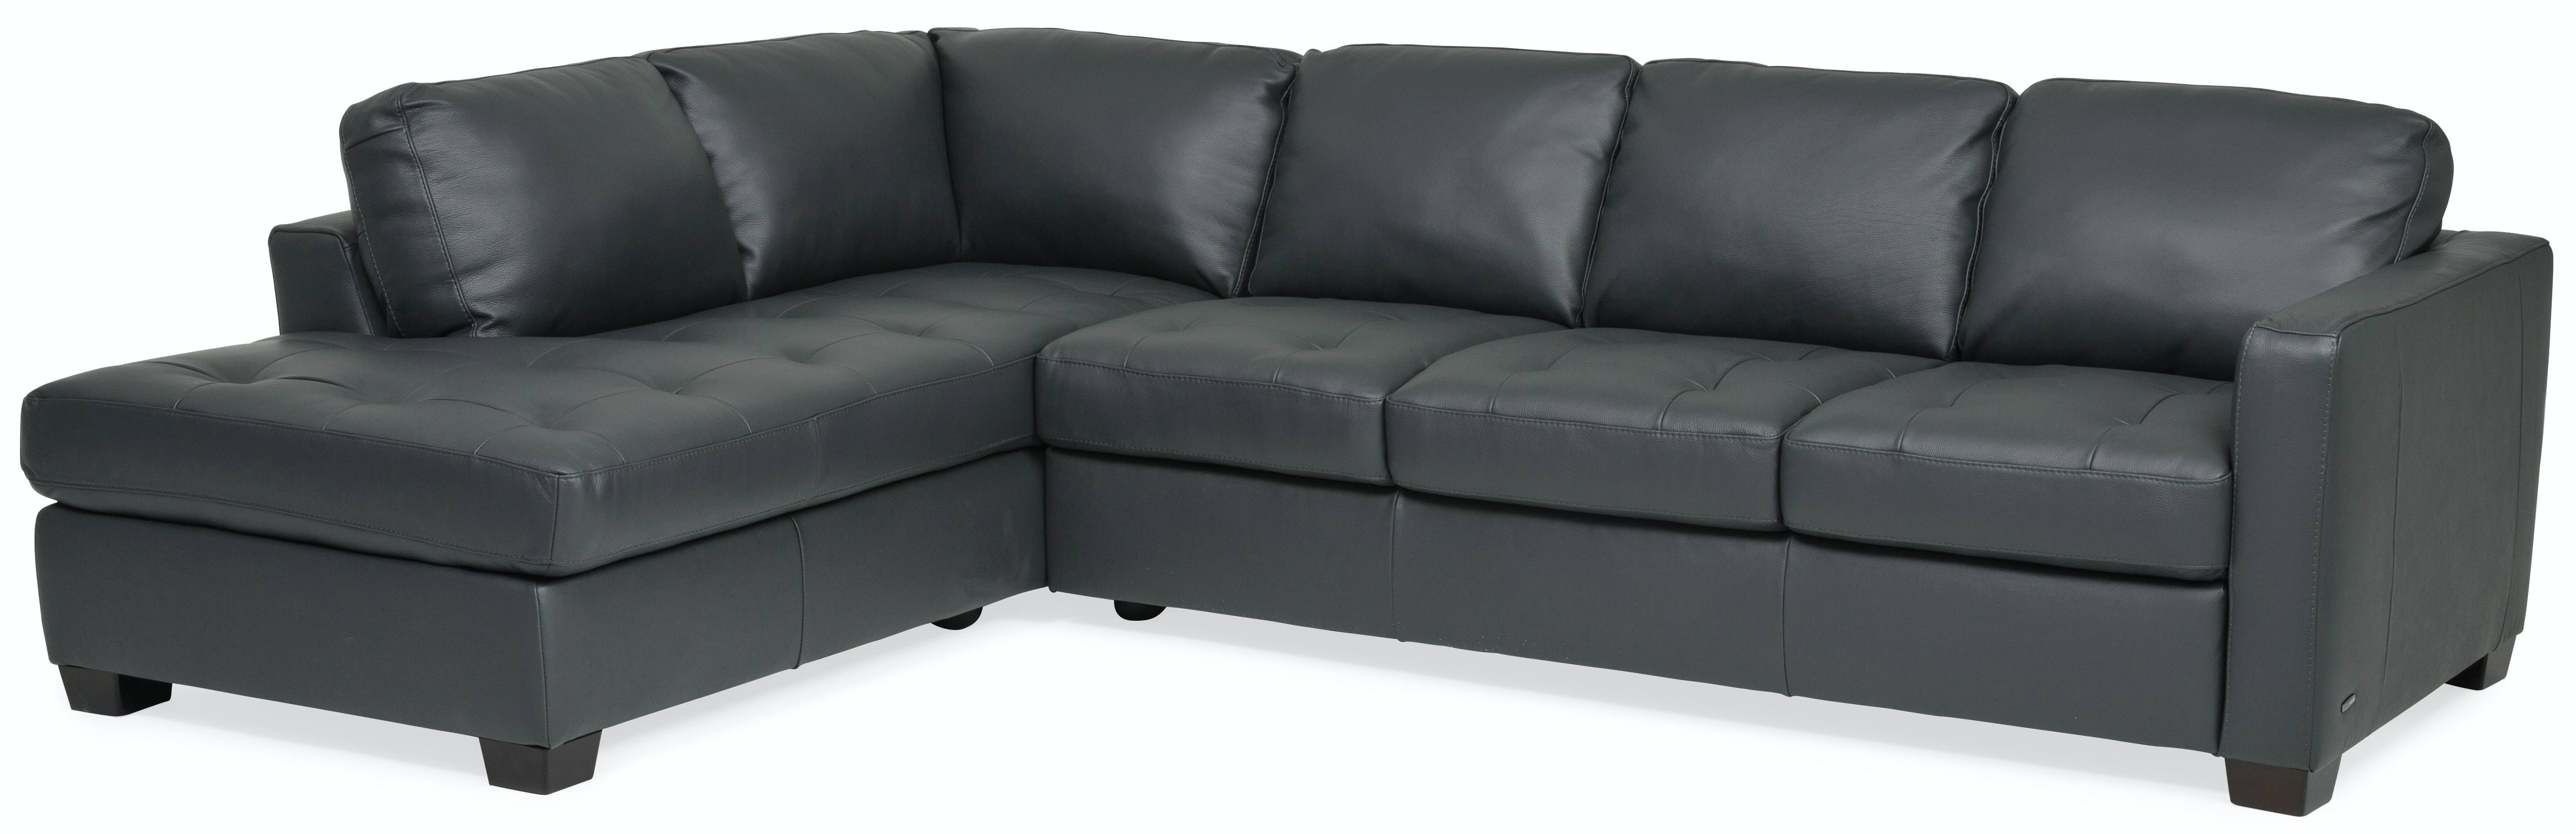 Denver Leather Chaise Sectional (LAF)   ANTHRACITE KT:83212